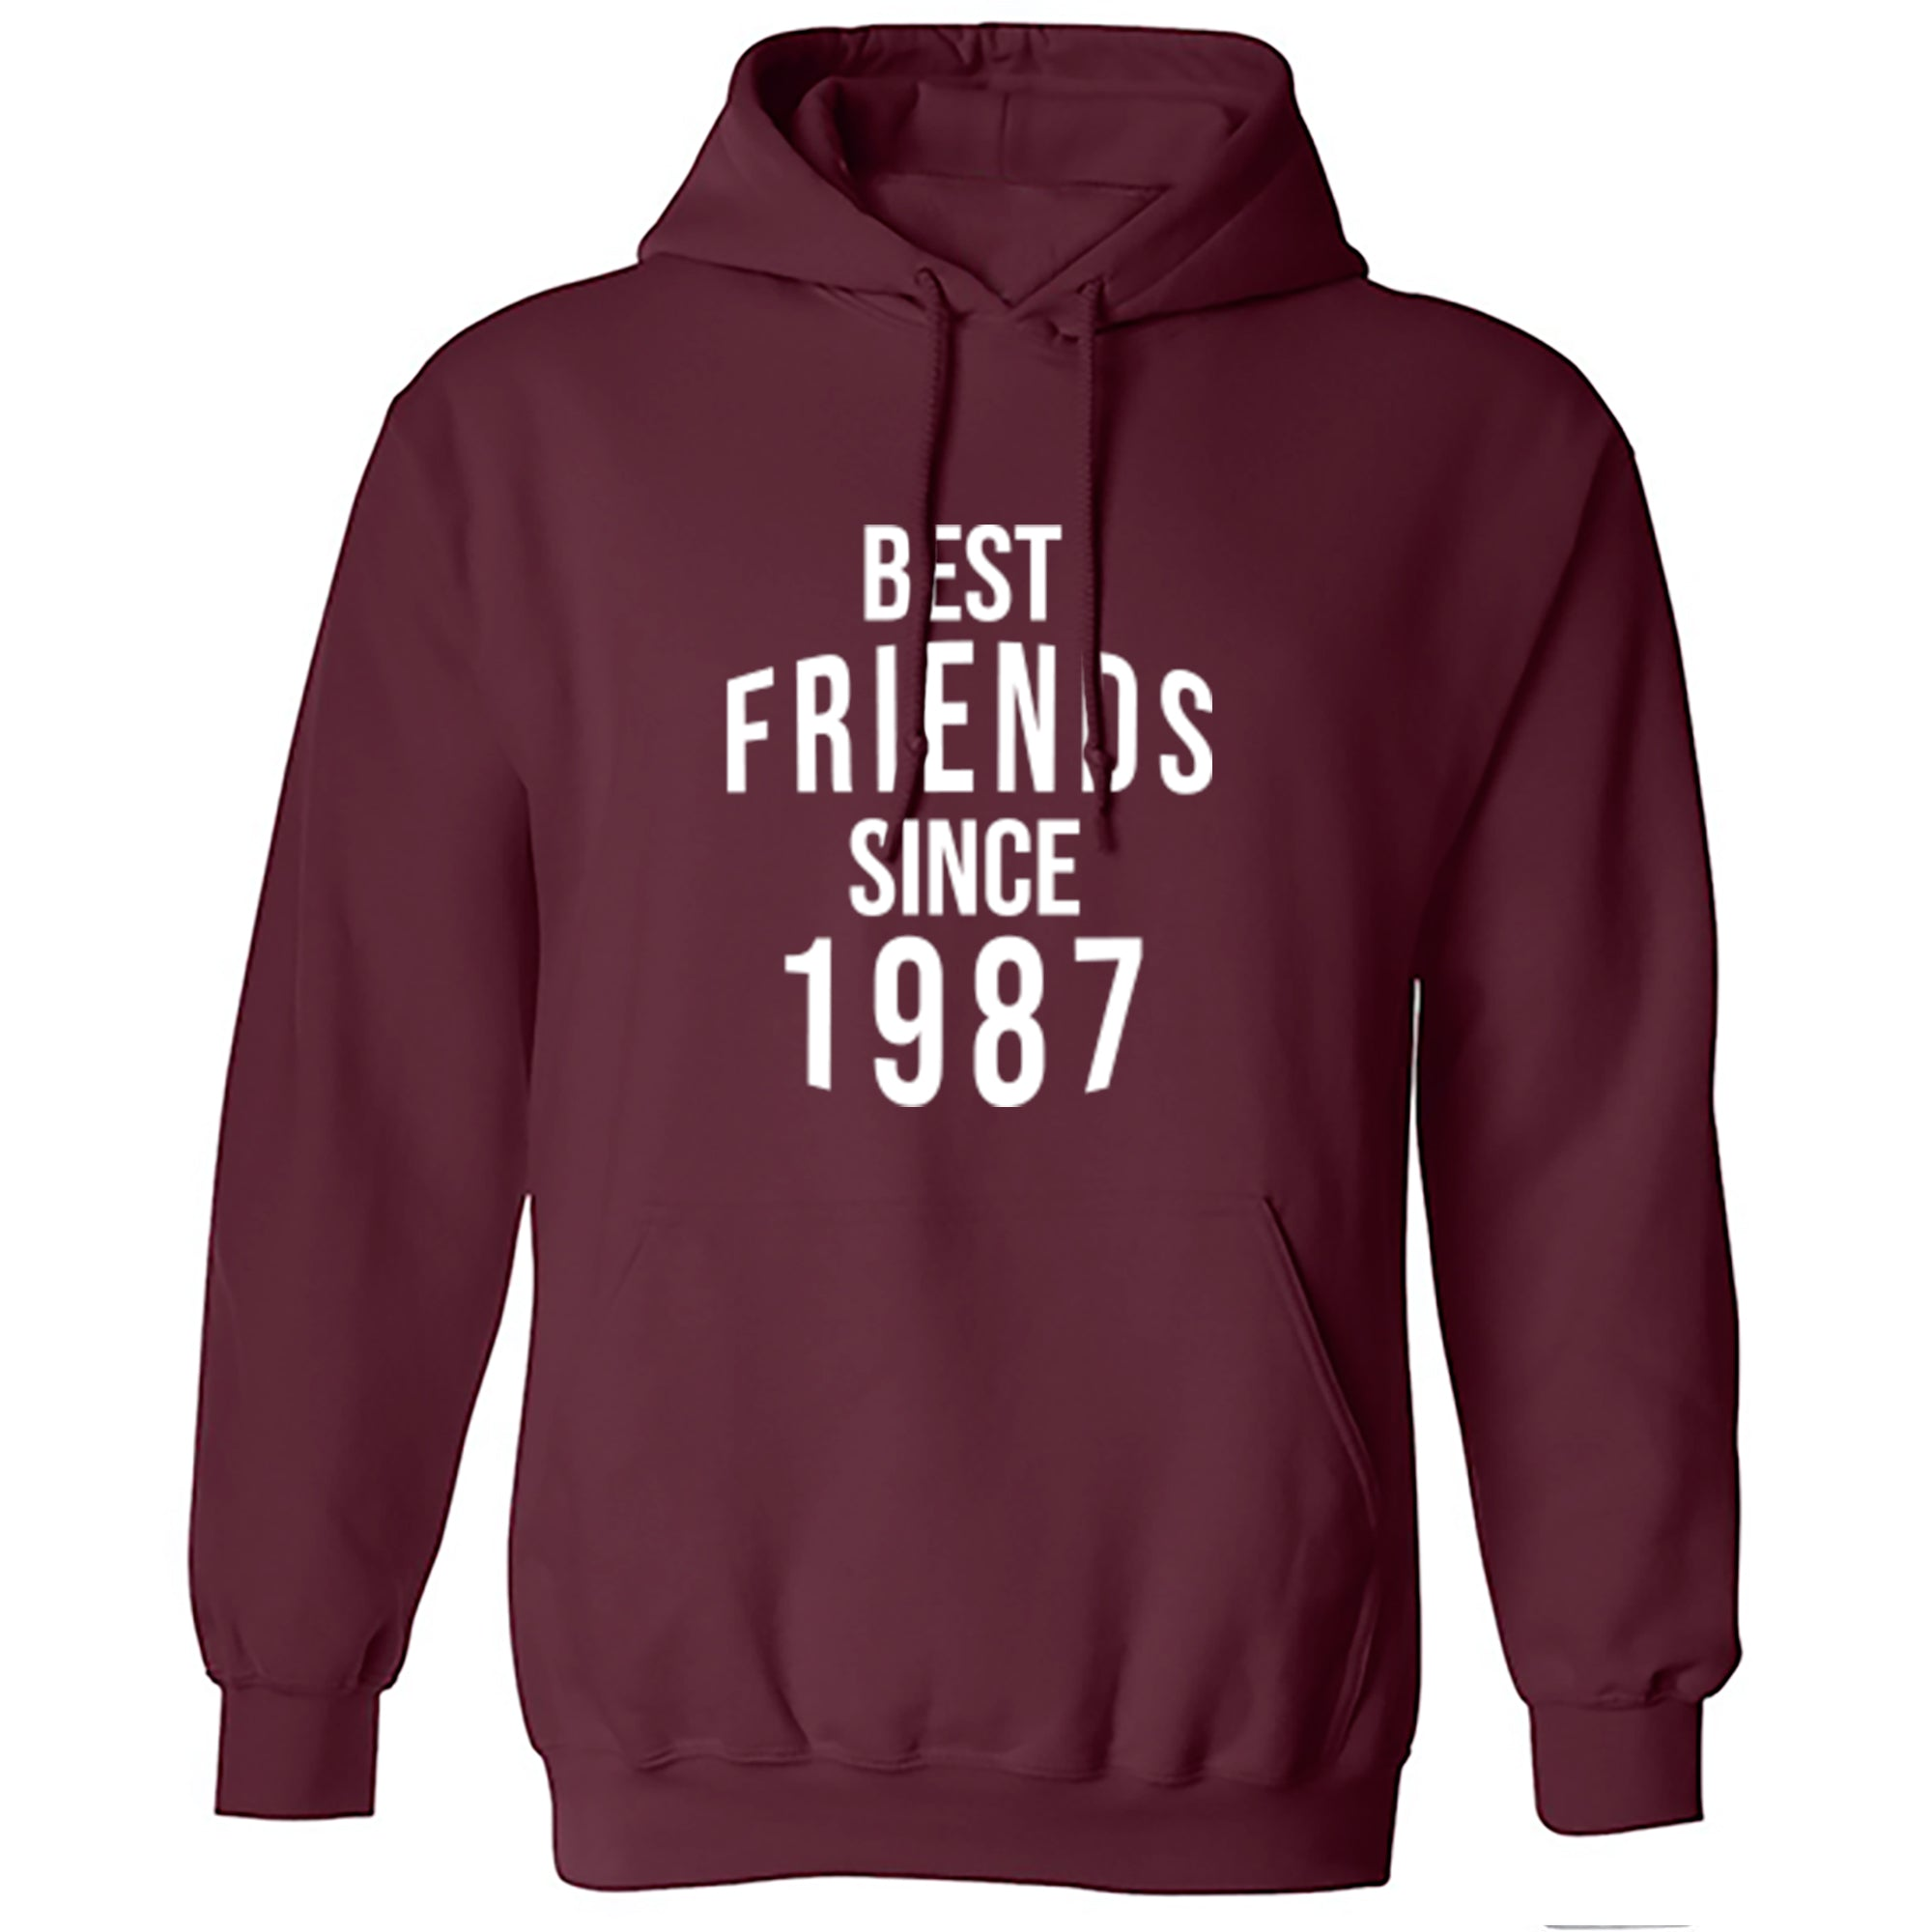 Best Friends Since 1987 Unisex Hoodie S0566 - Illustrated Identity Ltd.